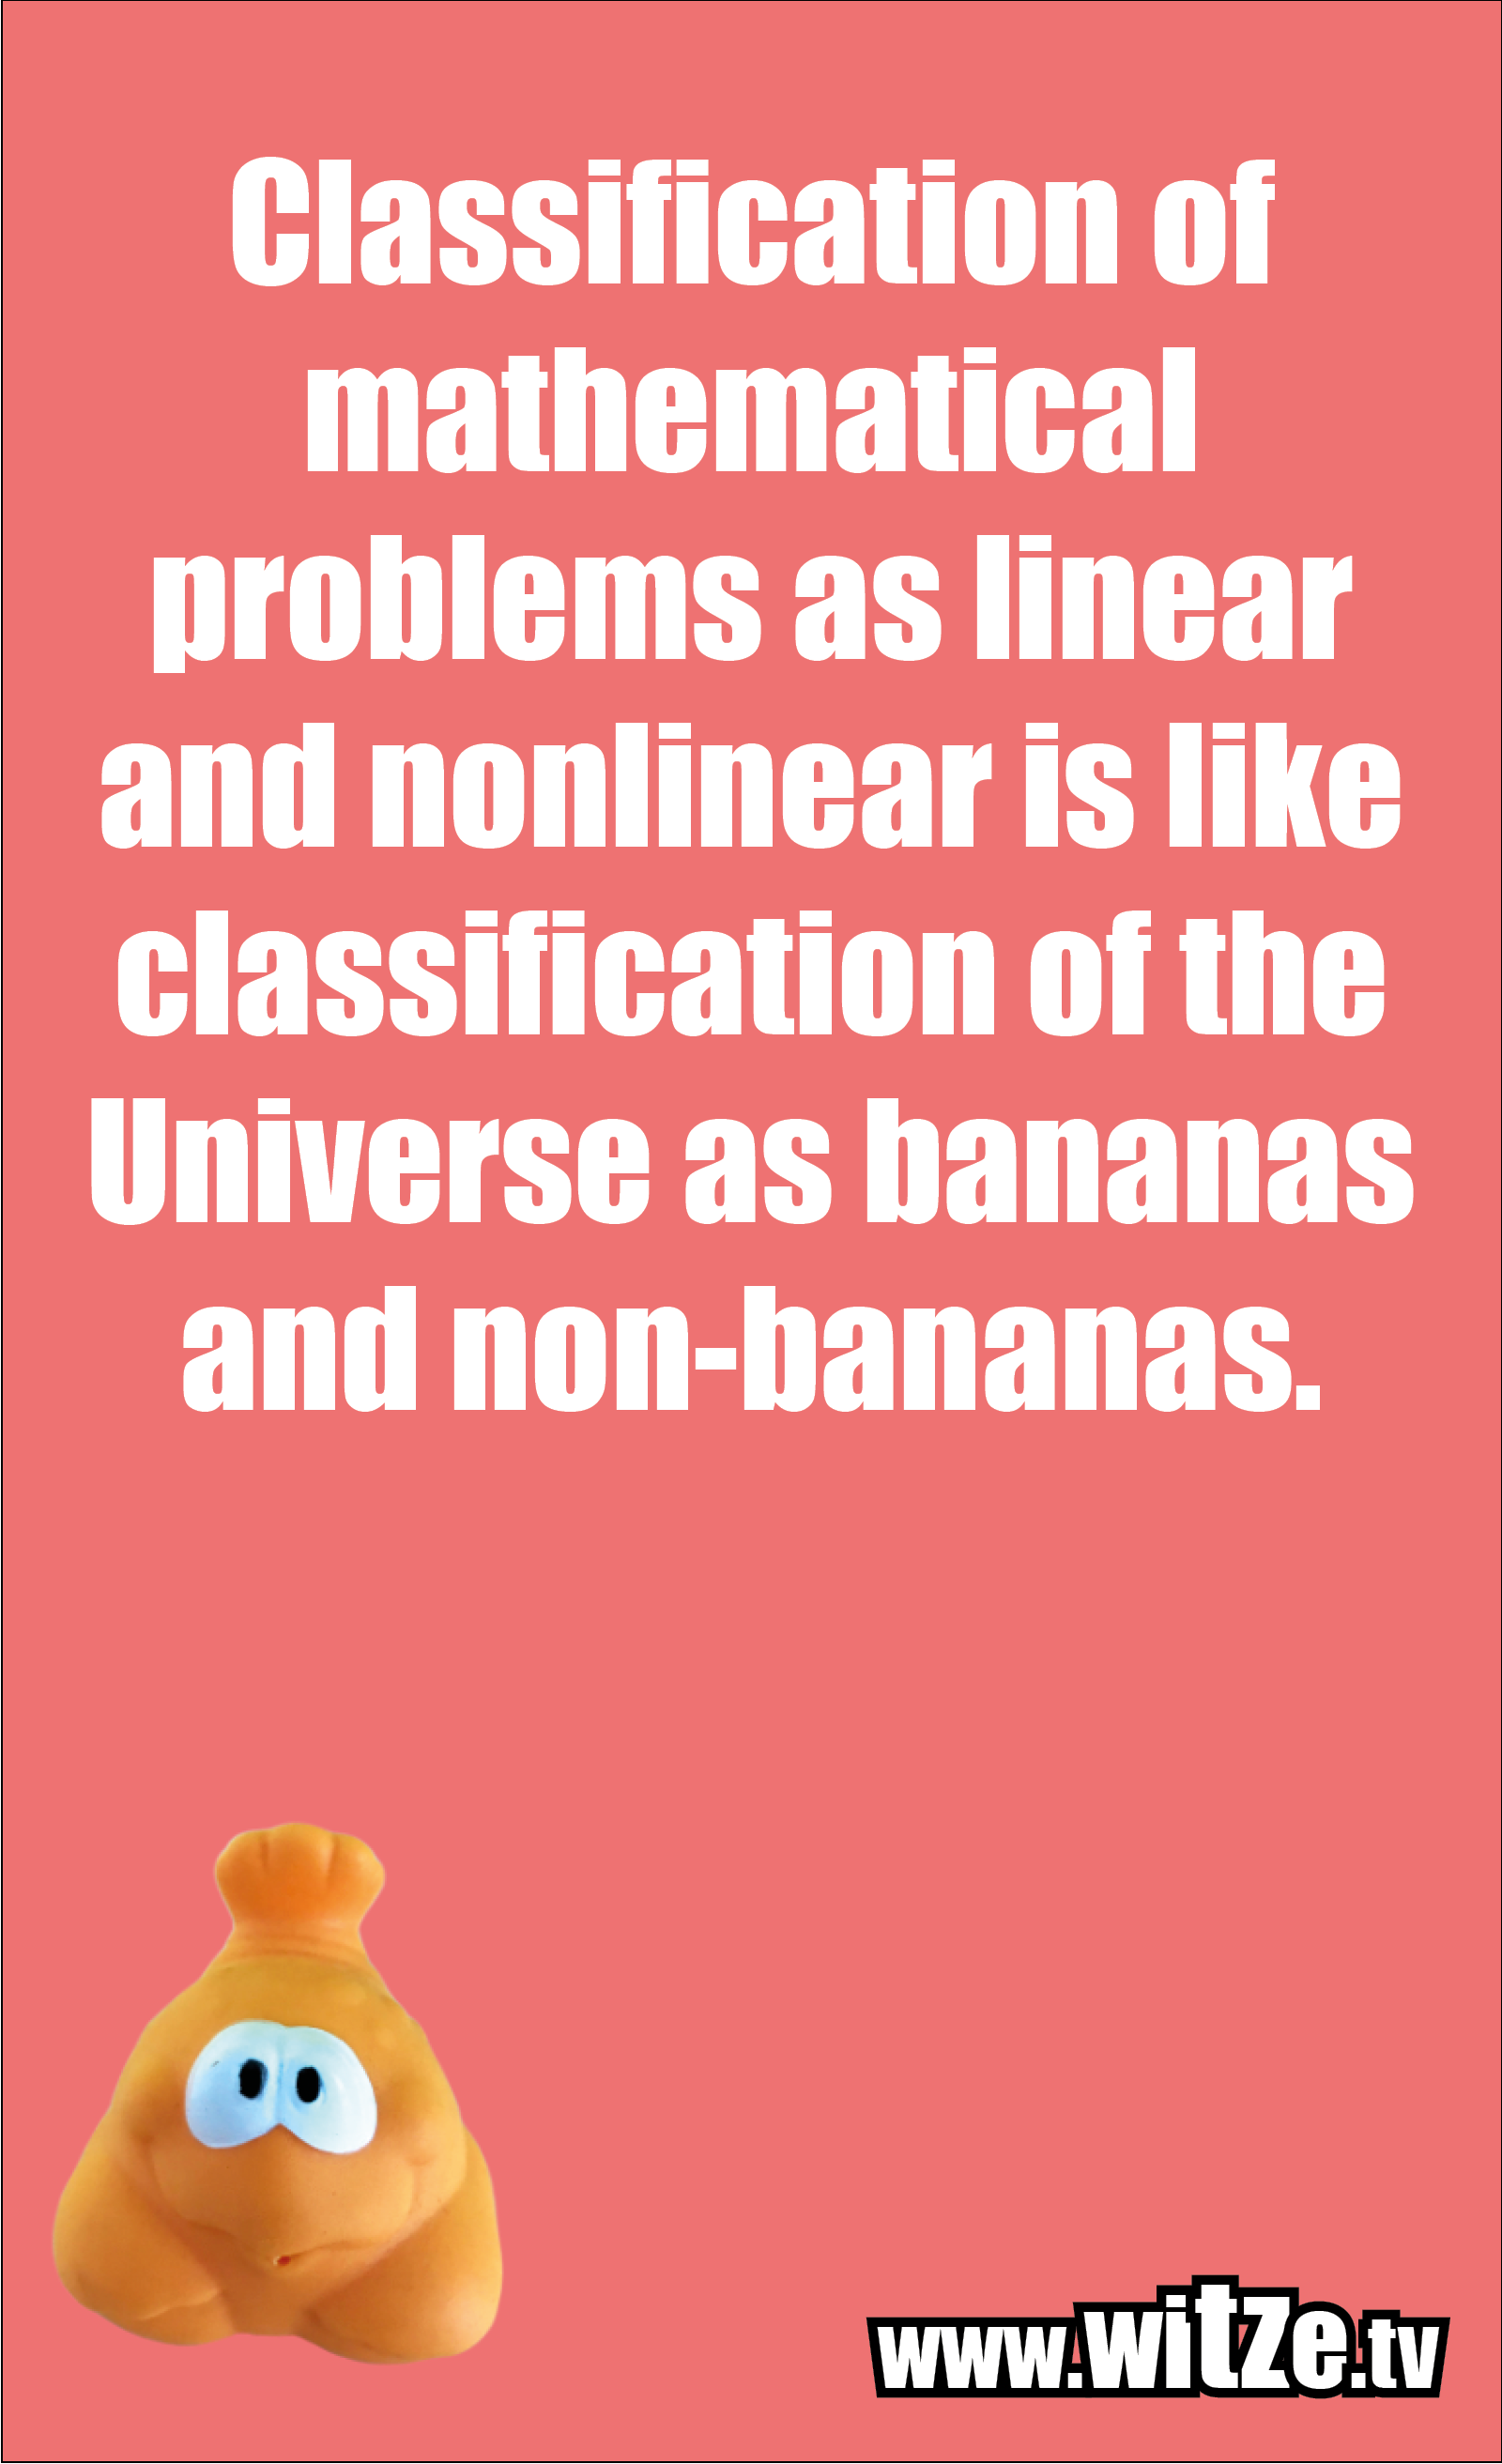 Math joke… Classification of mathematical problems as linear and nonlinear is like classification of the Universe as bananas and non-bananas.